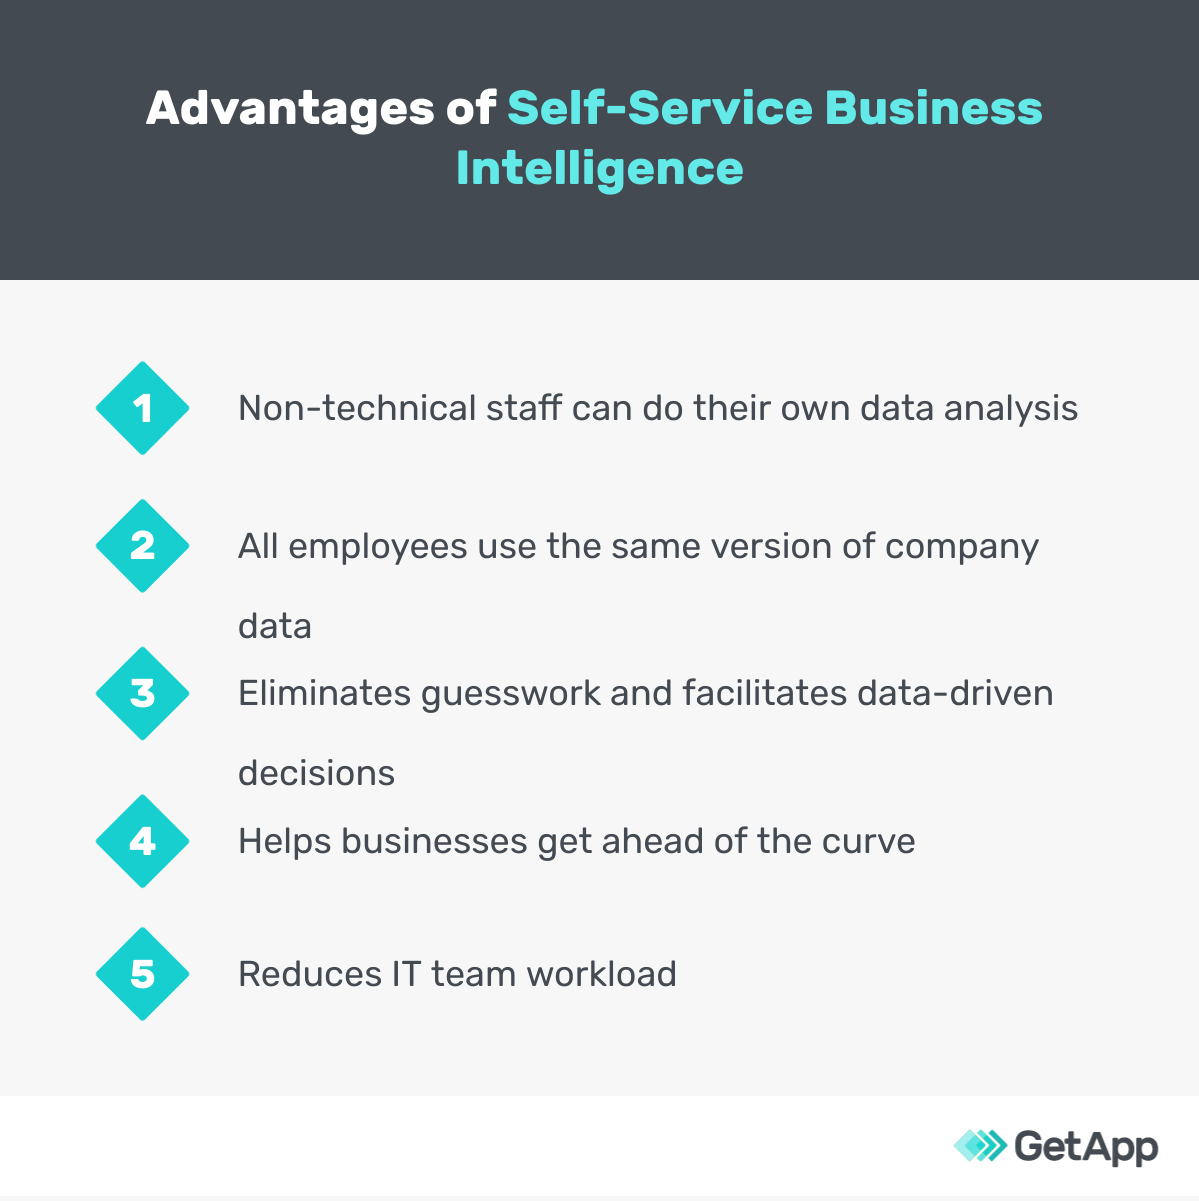 Advantages of Self-Service Business Intelligence